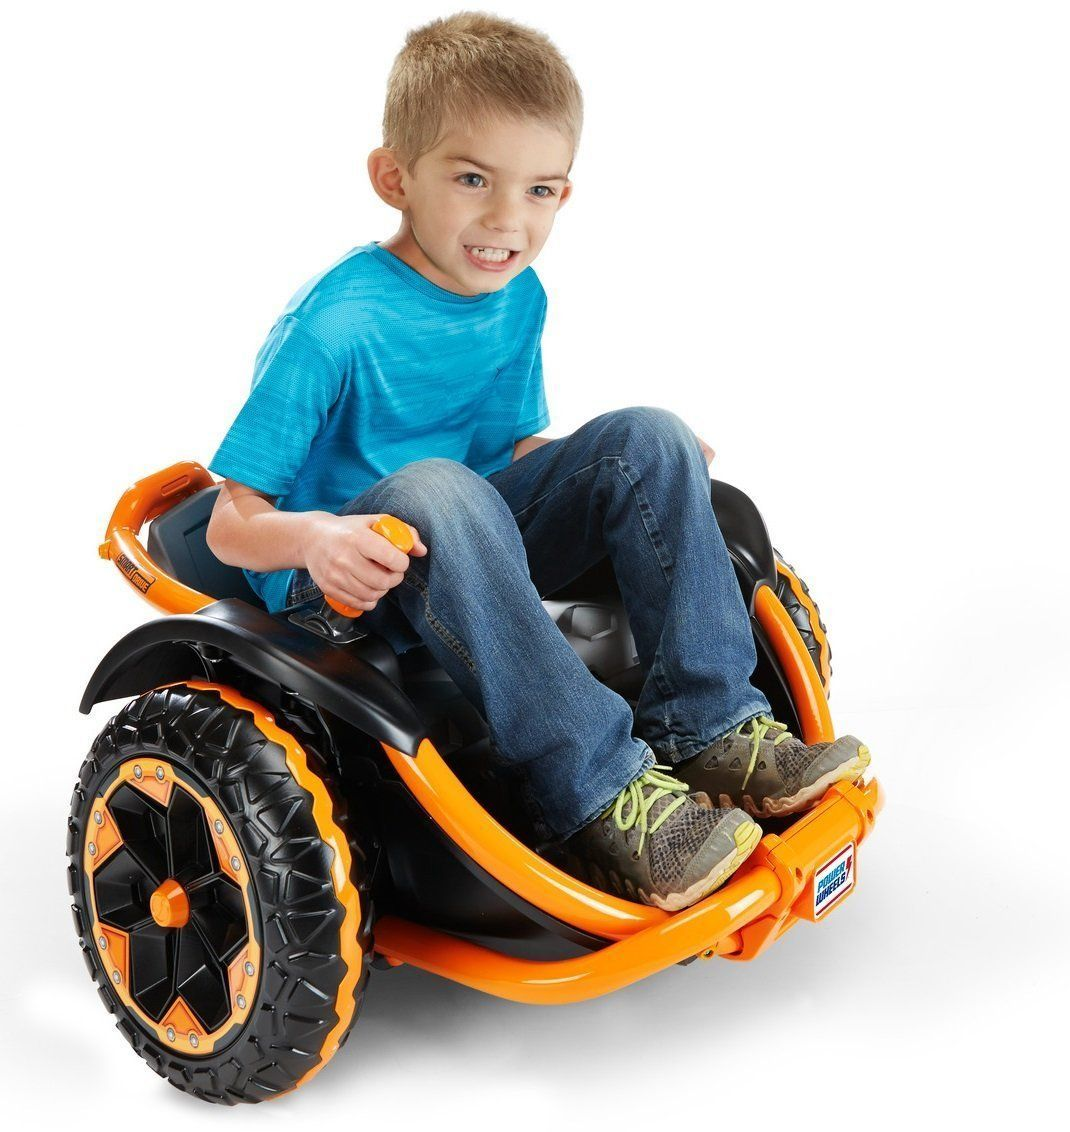 Popular Toys For Boys 9 Years And Up : Fisher price power wild thing juguetron